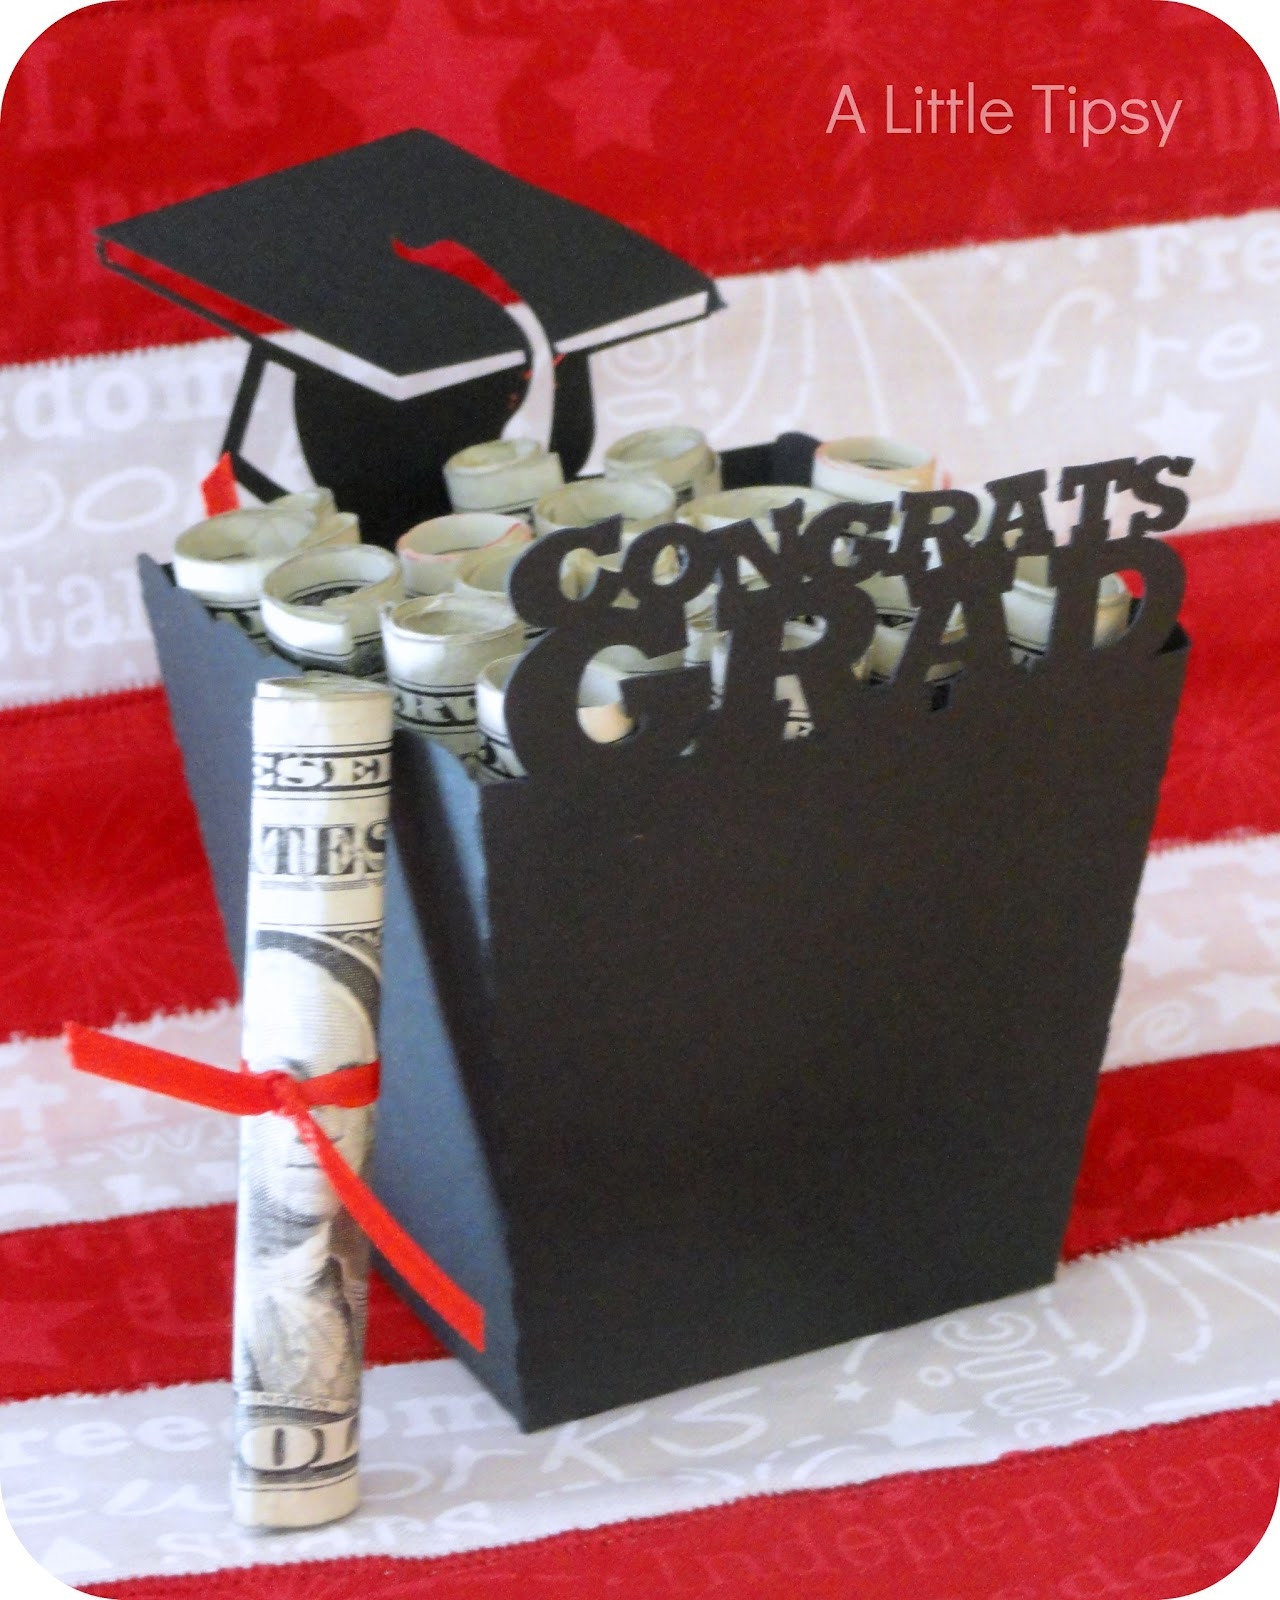 Best ideas about Last Minute Graduation Gift Ideas . Save or Pin Last Minute Graduation Gift A Little Tipsy Now.